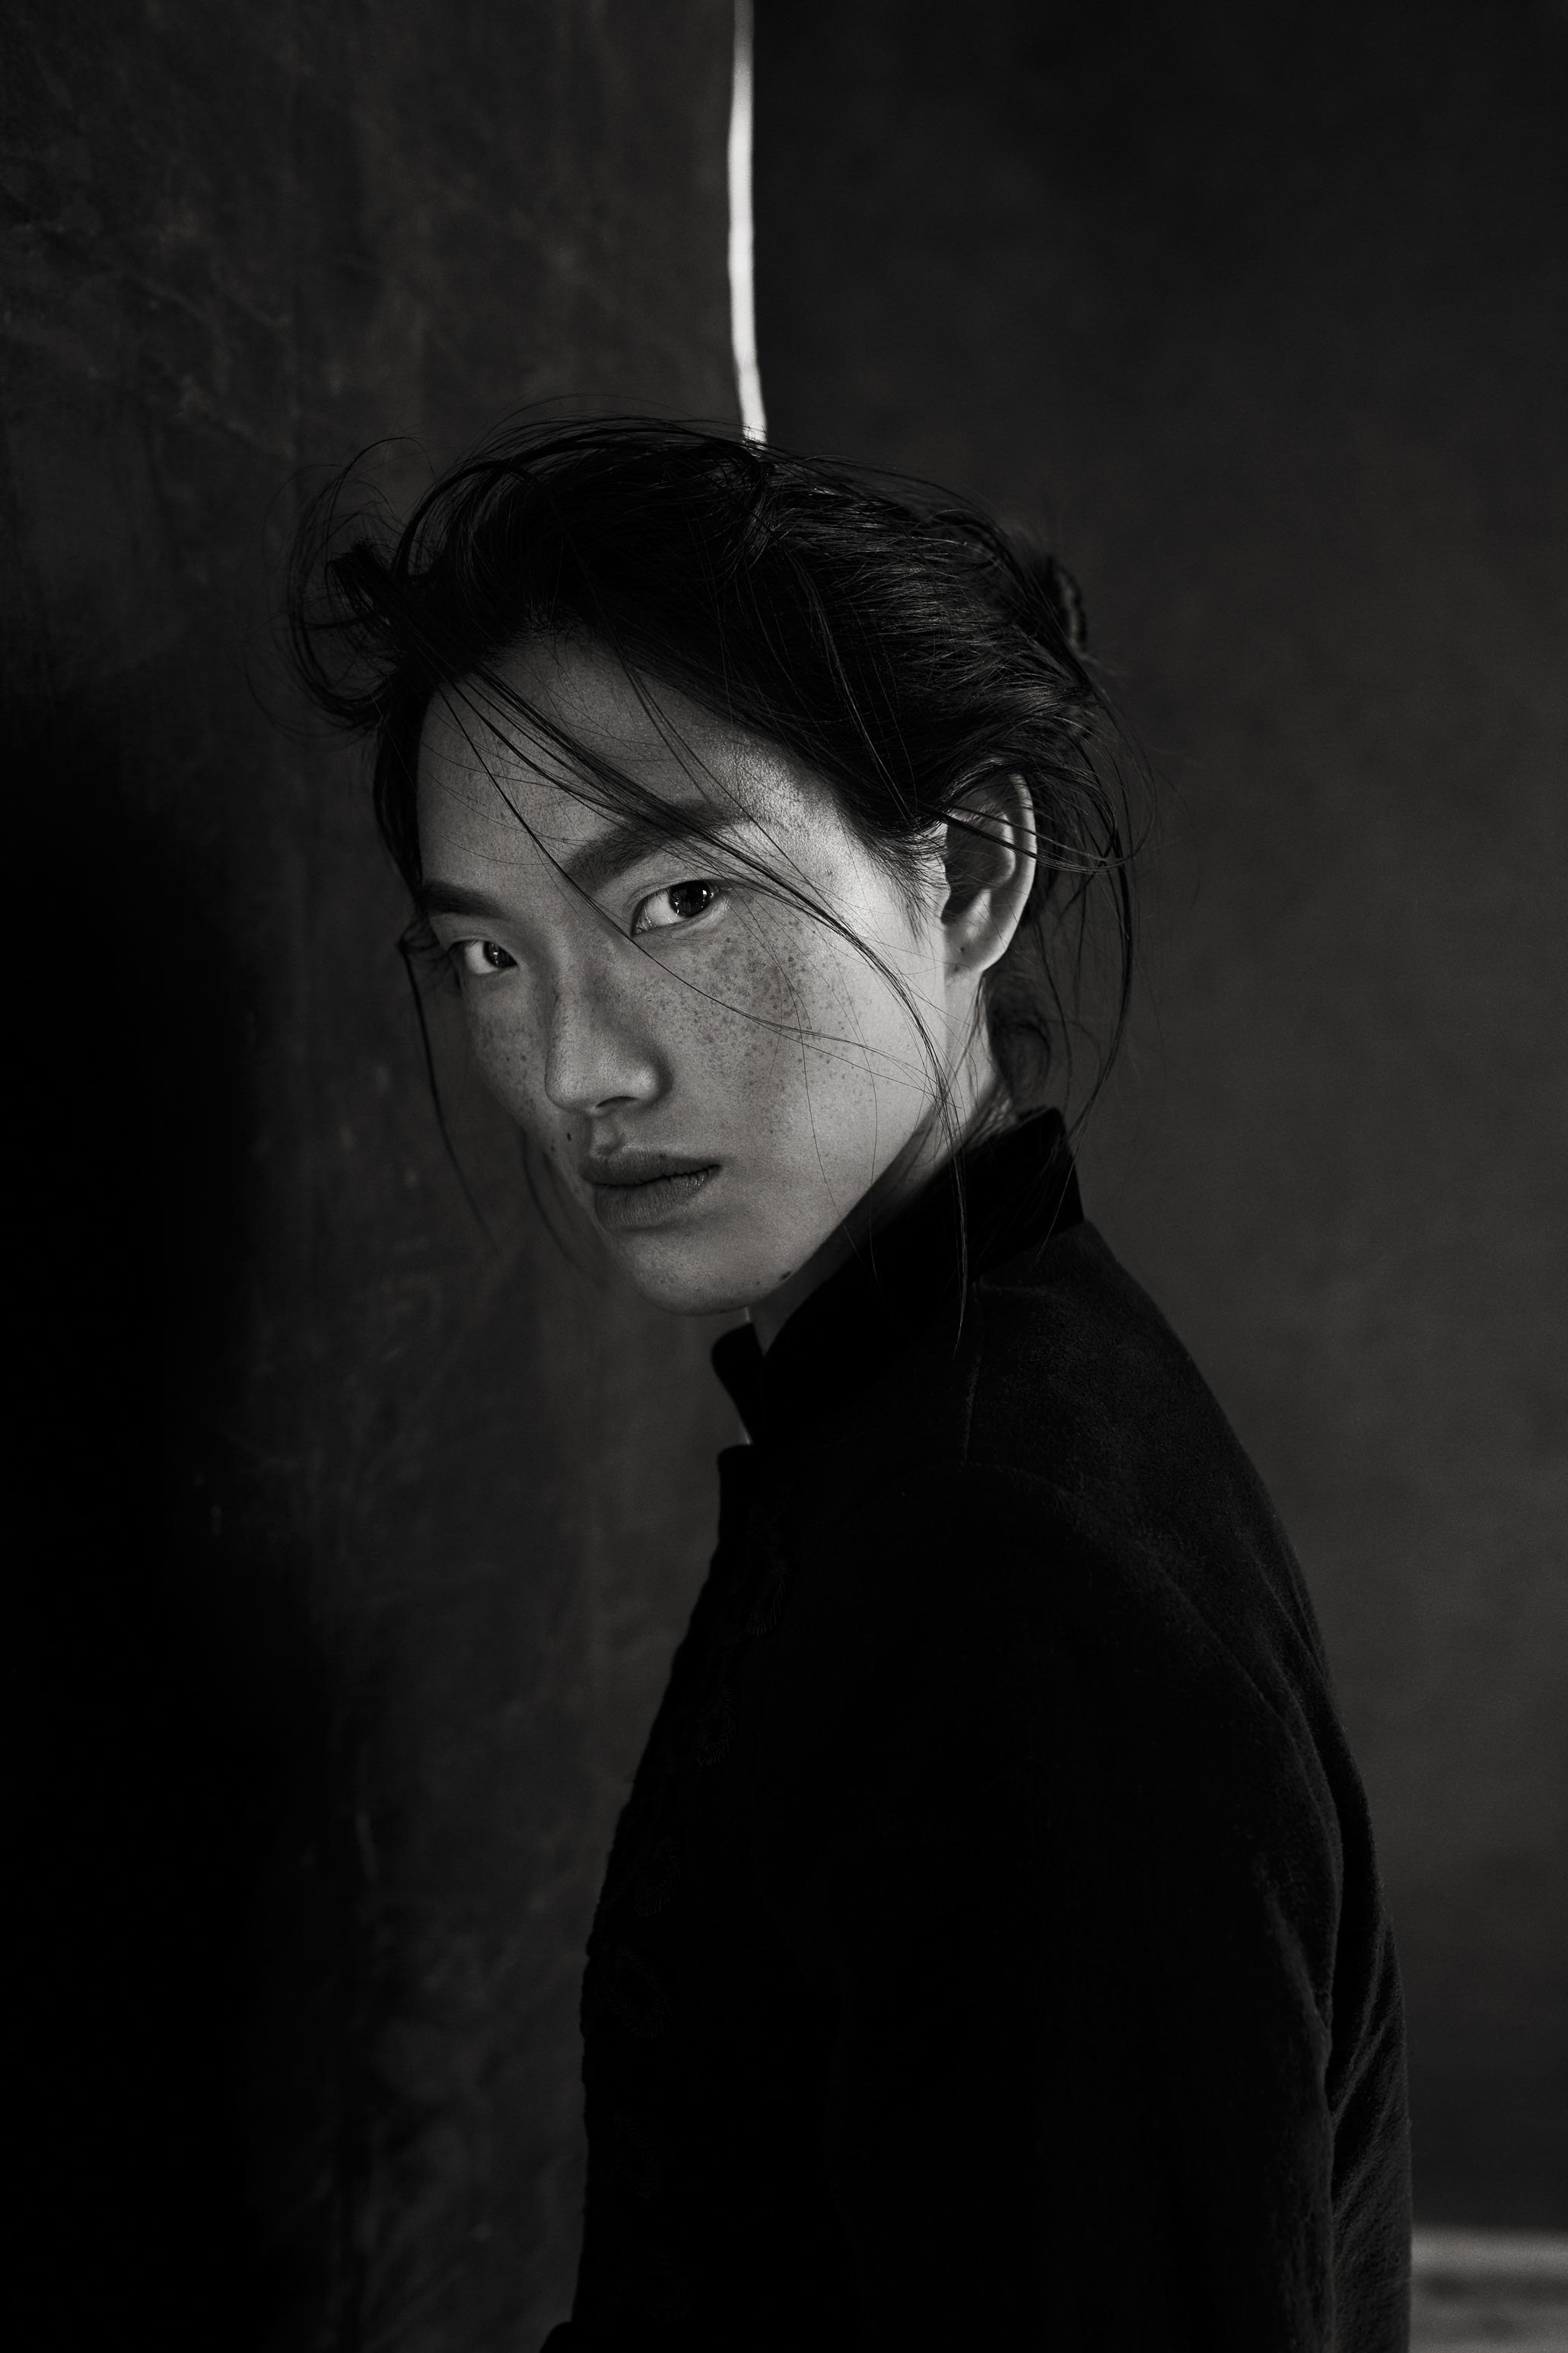 Dariane Sanche Professional photographer renowned in Montreal and internationally, magnificent black and white portrait of an Asian woman